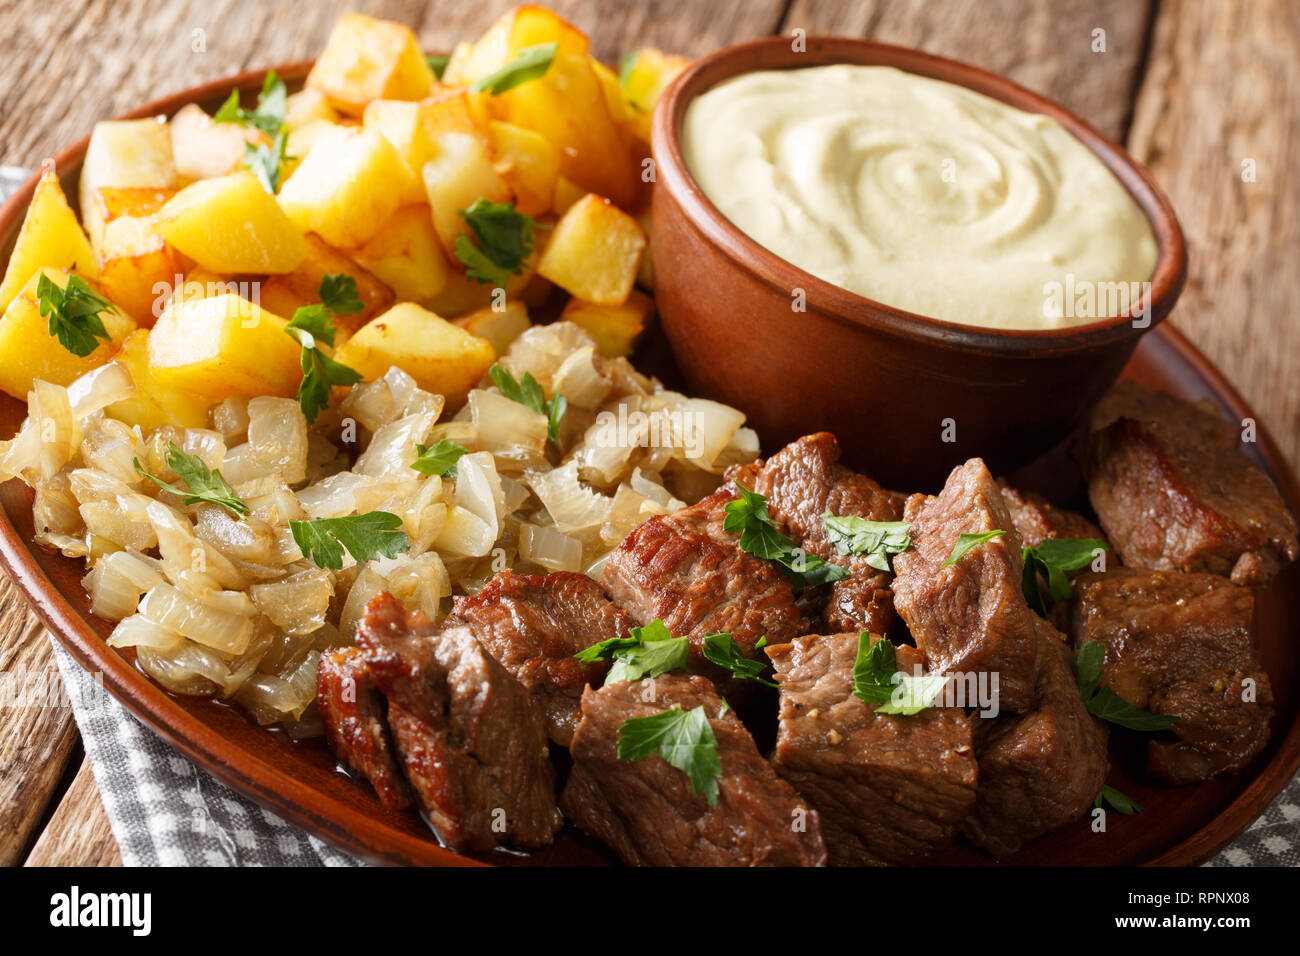 Classic Table Side Dishes Beef Rydberg Is A Real Classic Swedish Restaurant Dish Served With